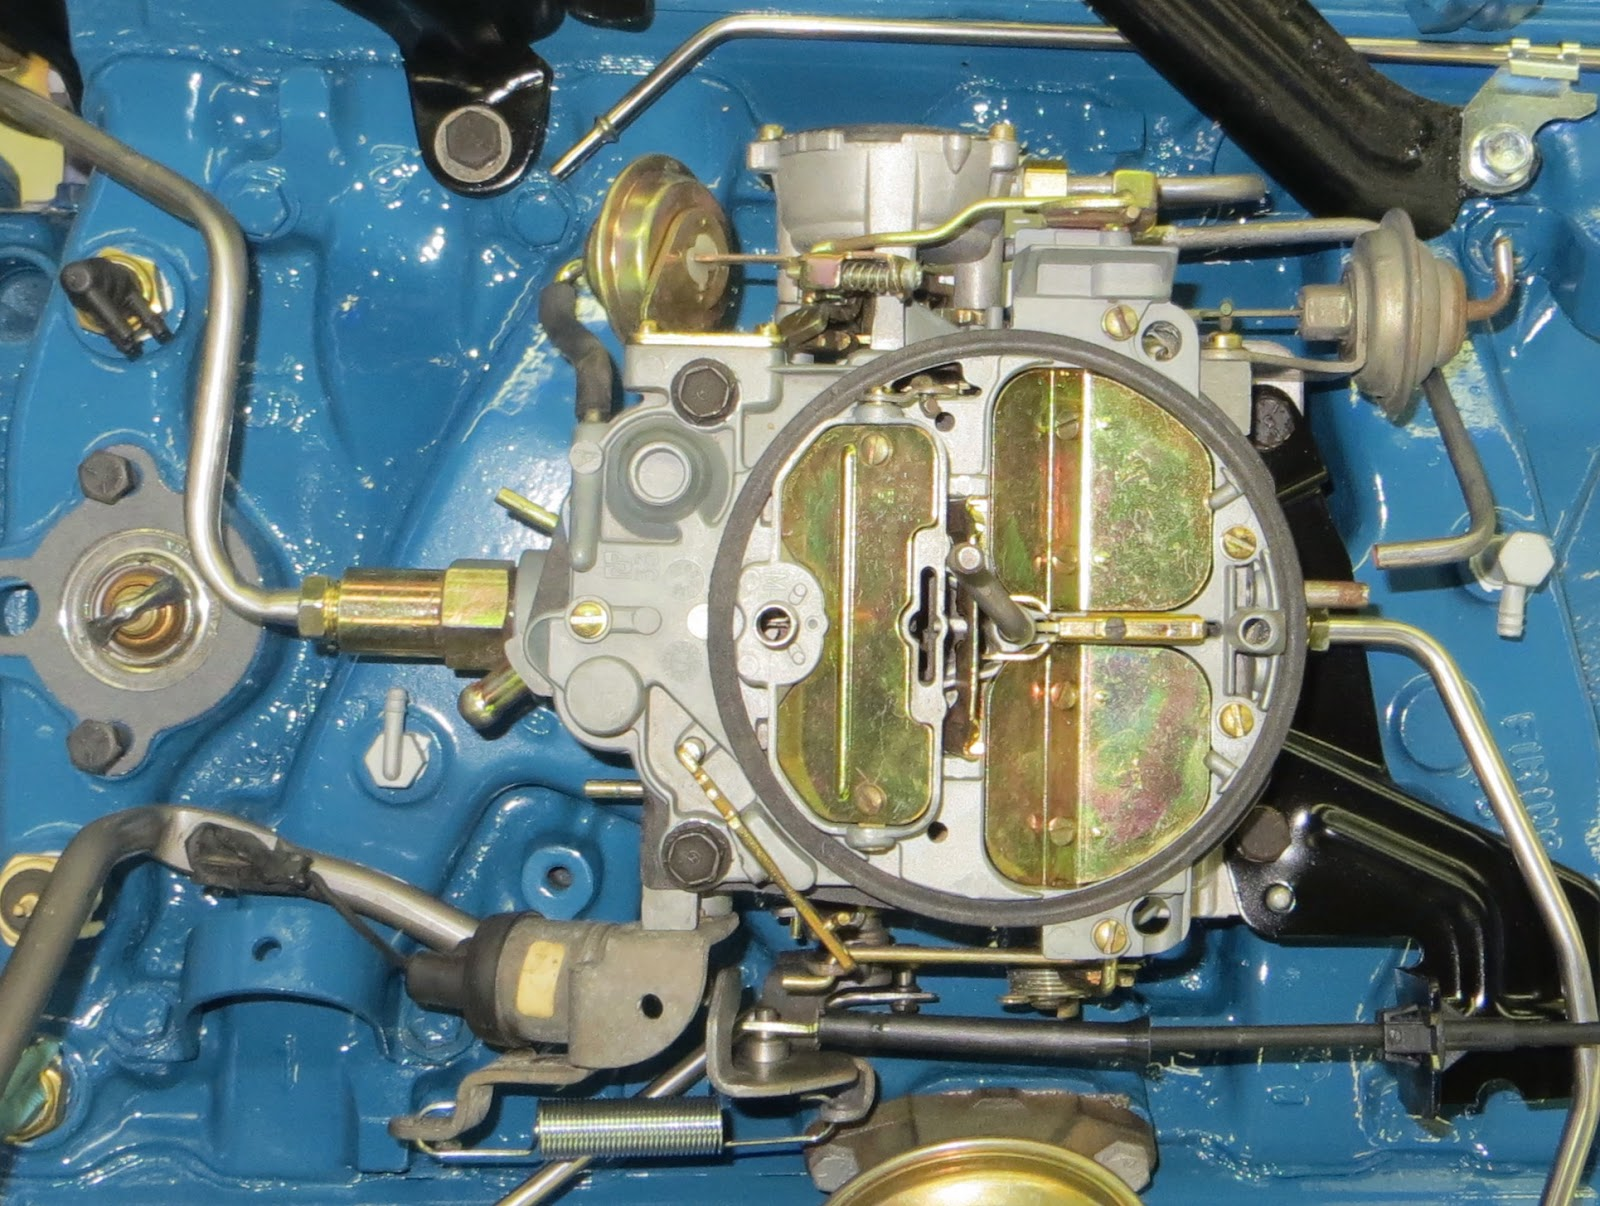 hight resolution of 17058553 quadrajet 4 barrel carburetor with no vacuum lines connected